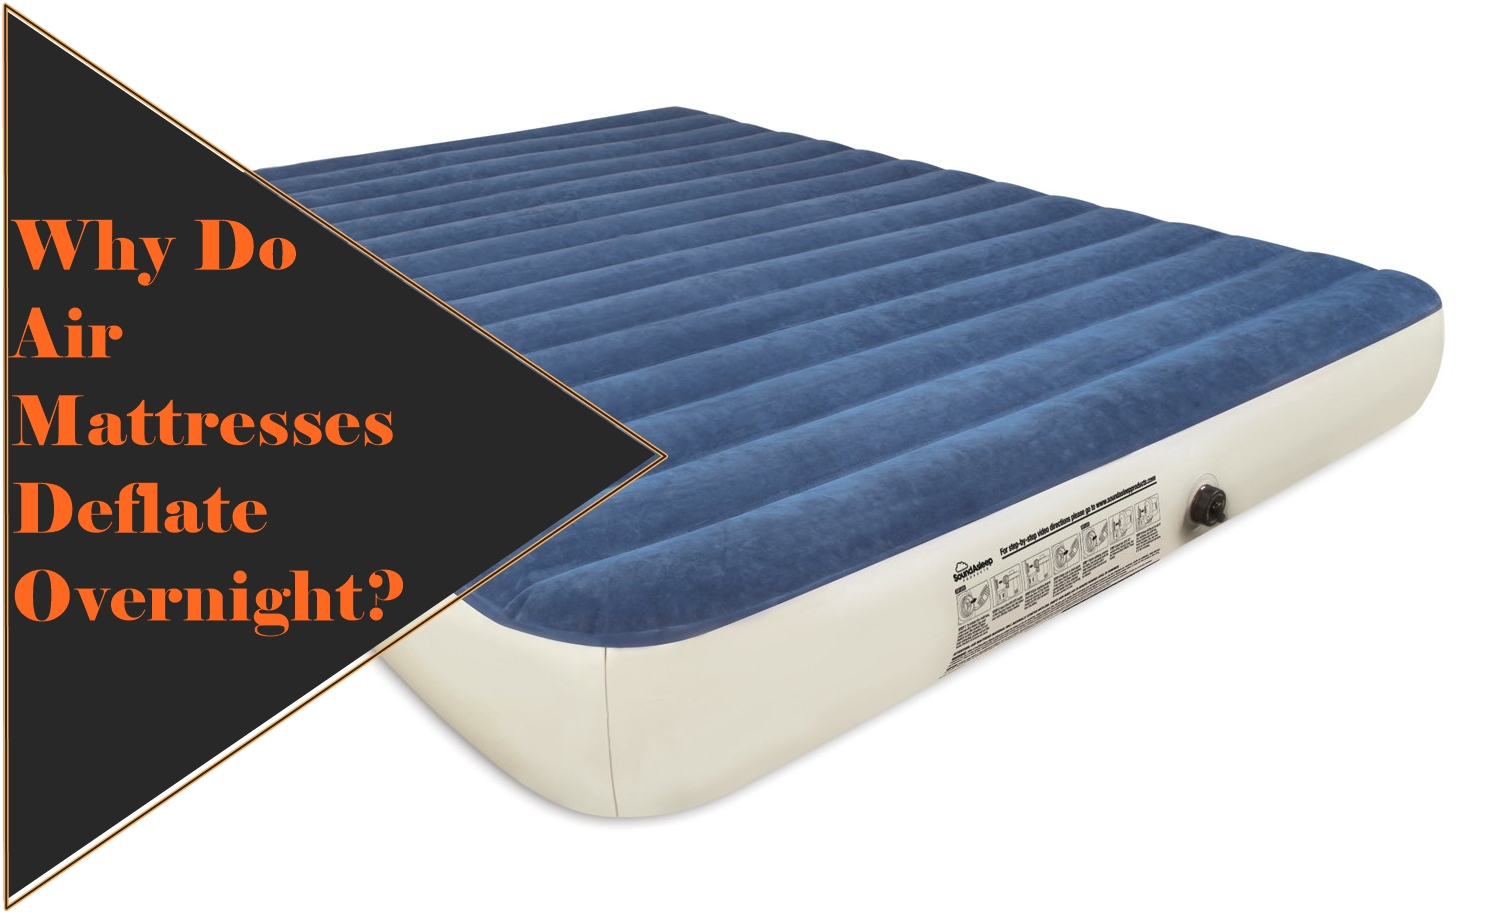 Why do air mattresses deflate overnight?